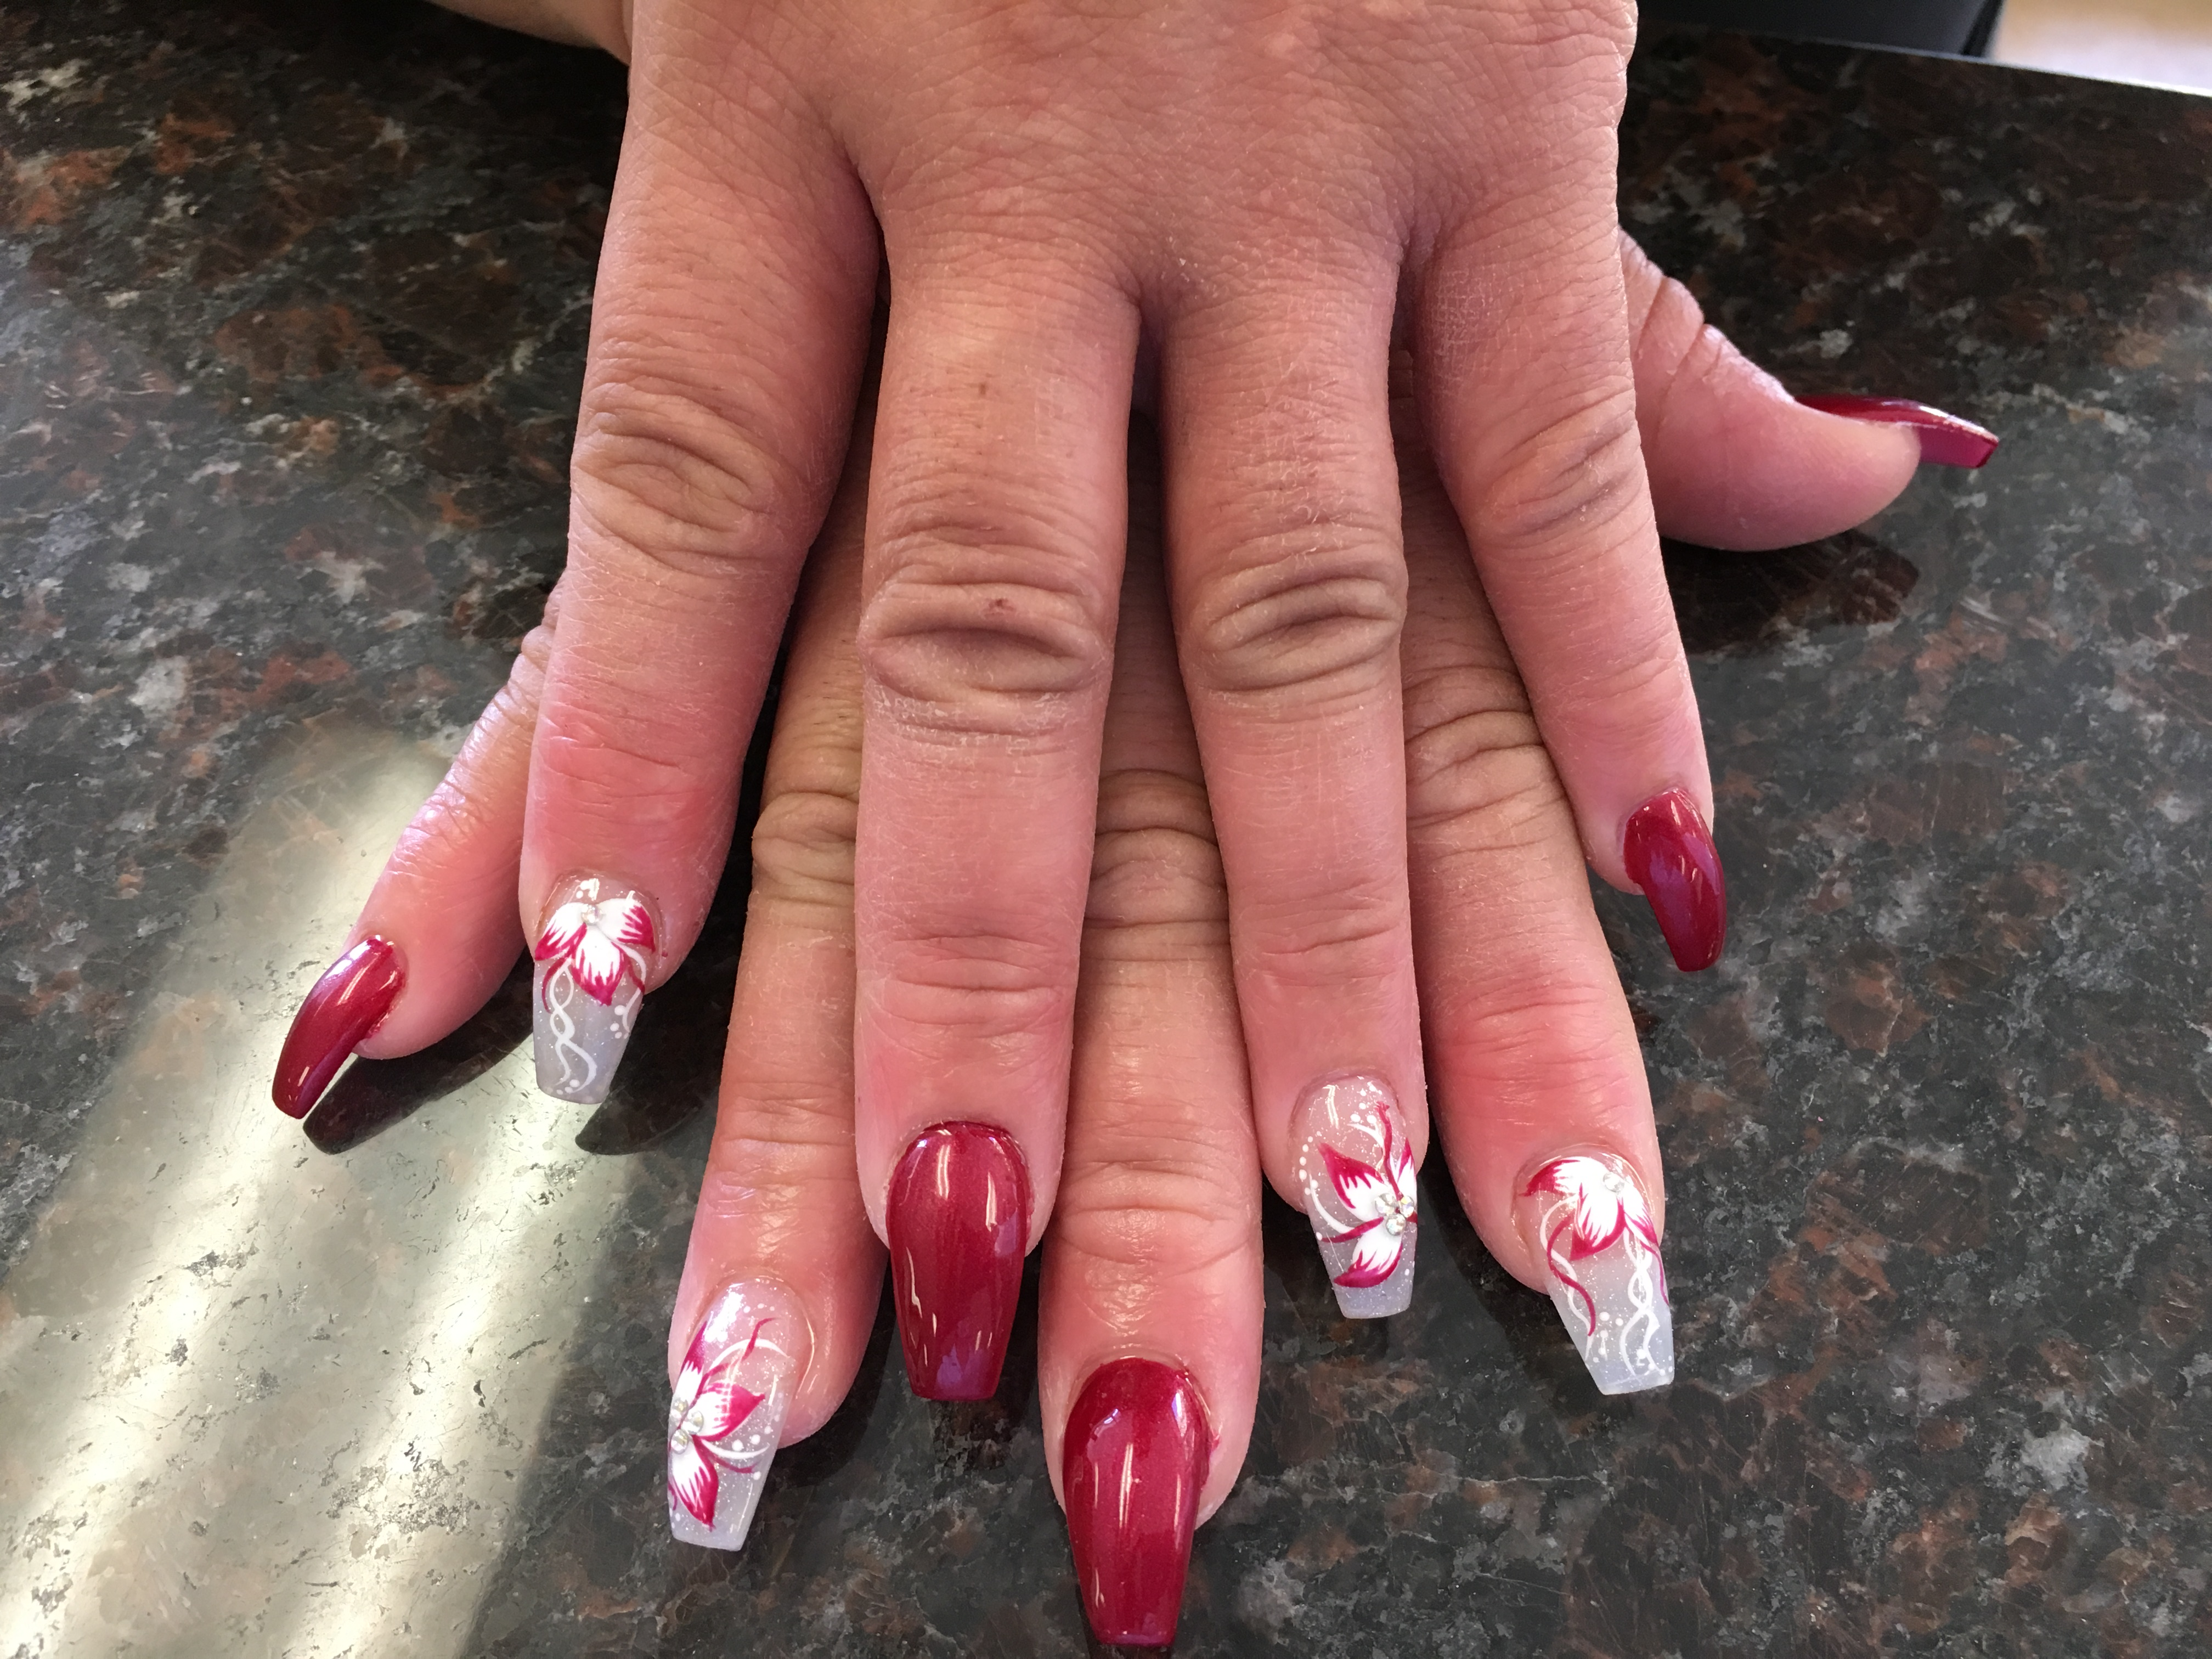 Pro Top Nails 5221 Stockdale Hwy Ste A, Bakersfield, CA 93309 - YP.com